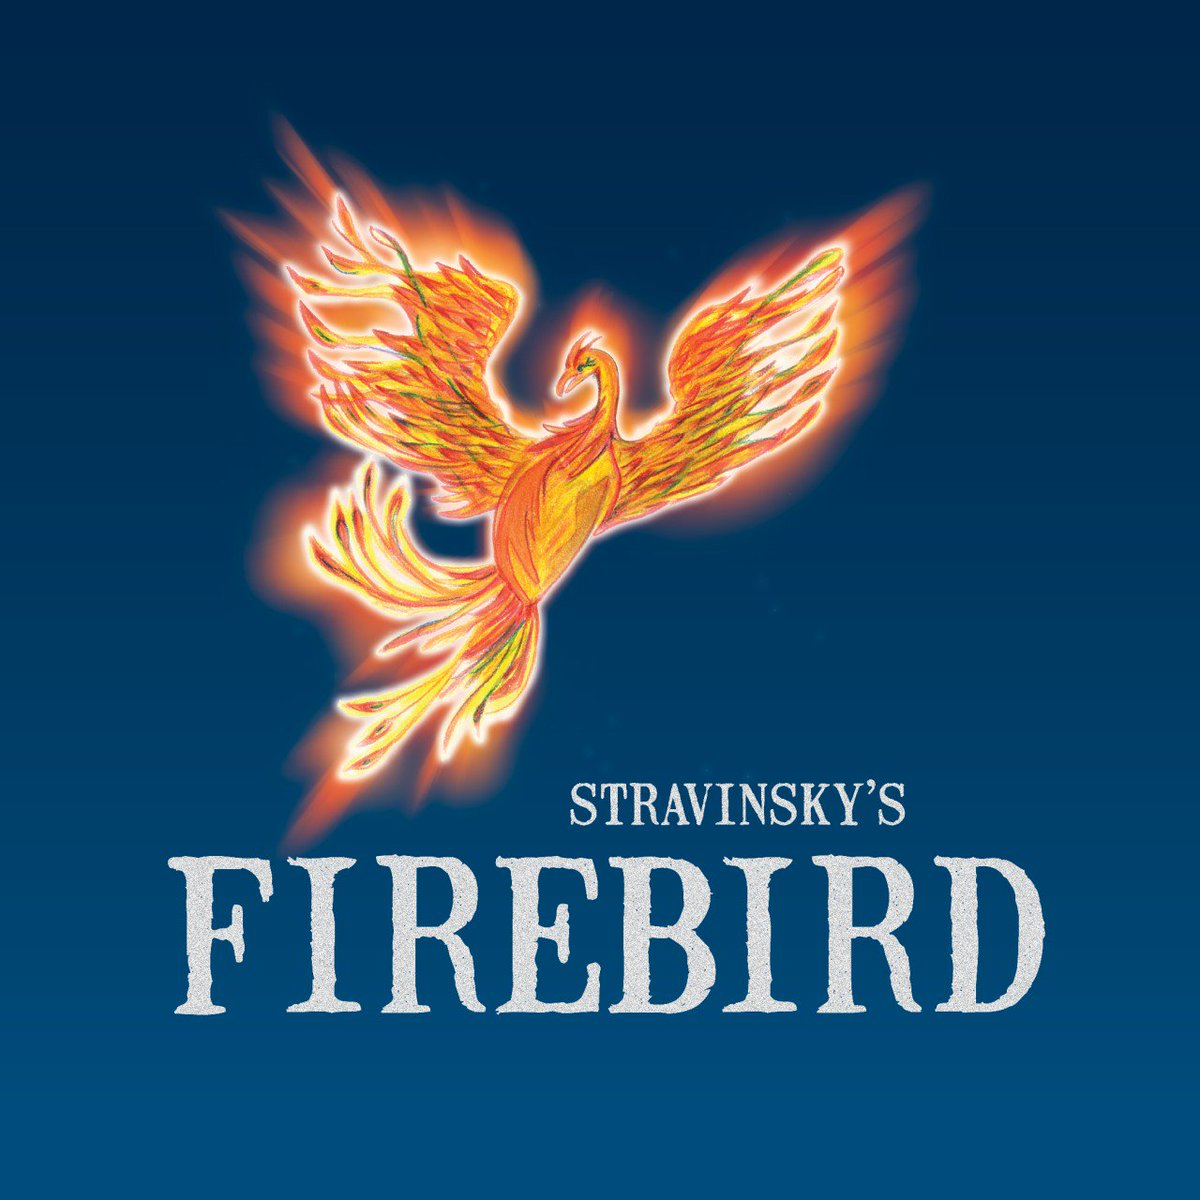 #Today in 1910 FP of #Stravinsky&#39;s Firebird. Performed by Diaghilev&#39;s Ballet Russe in Paris. #MusicHistory #classicalmusic <br>http://pic.twitter.com/Yd6ANok6iA